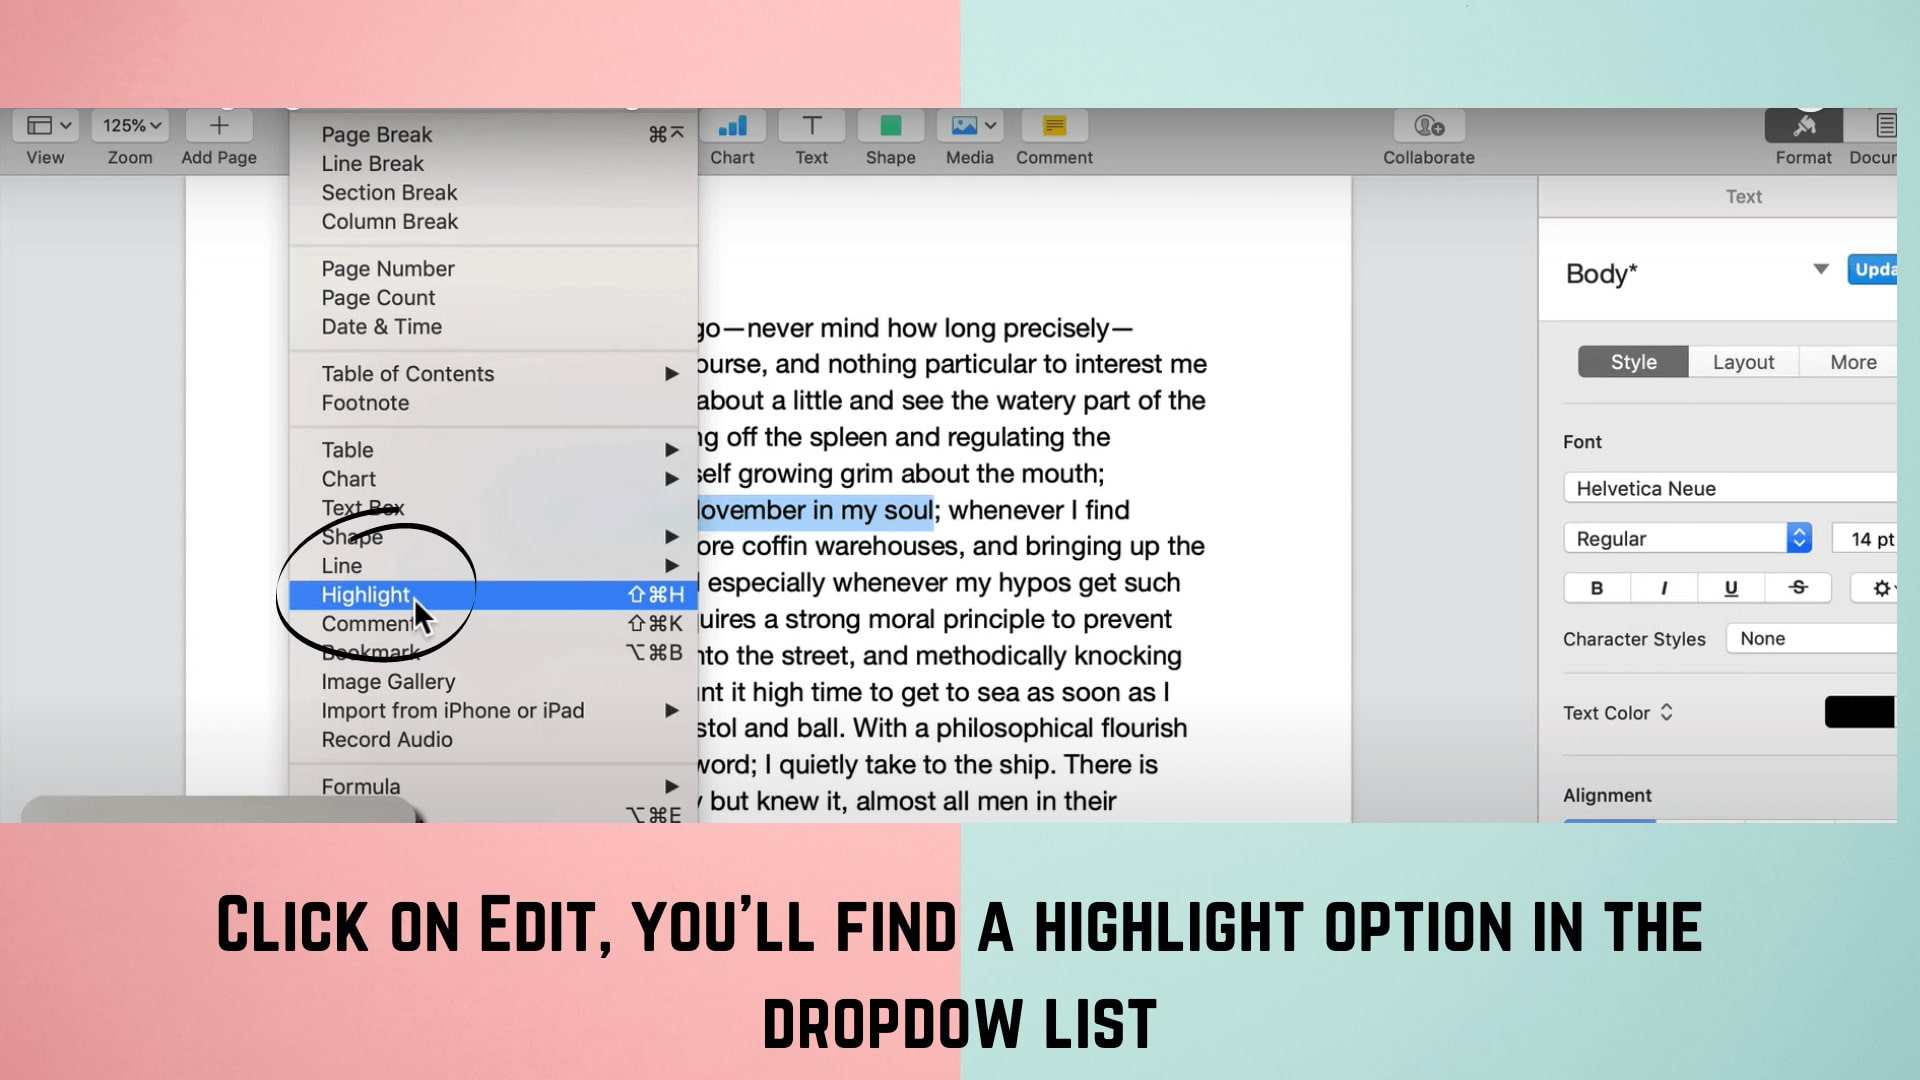 You can highlight the text from edit and then press highlight